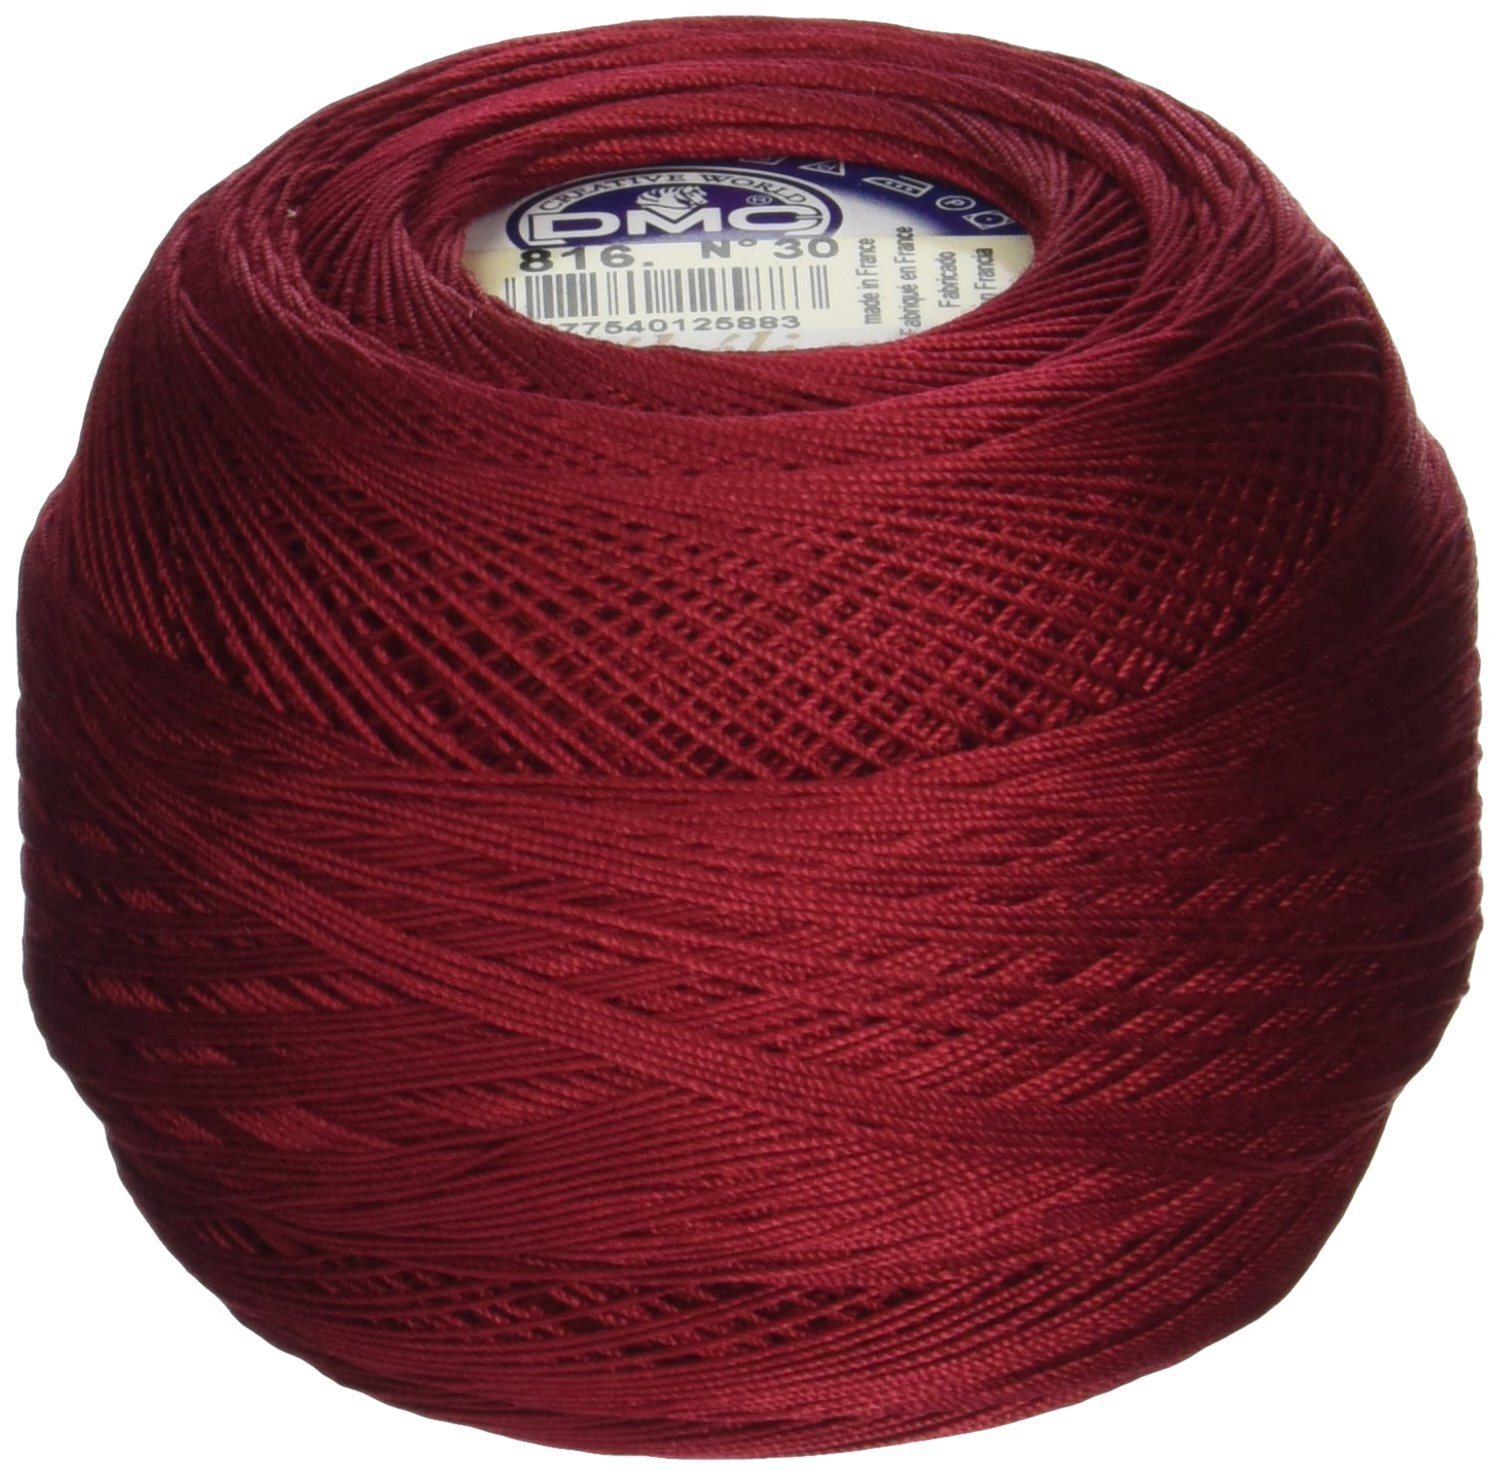 DMC 167GA 30-816 Cebelia Crochet Cotton, 563-Yard, Size 30, Garnet Notions - In Network